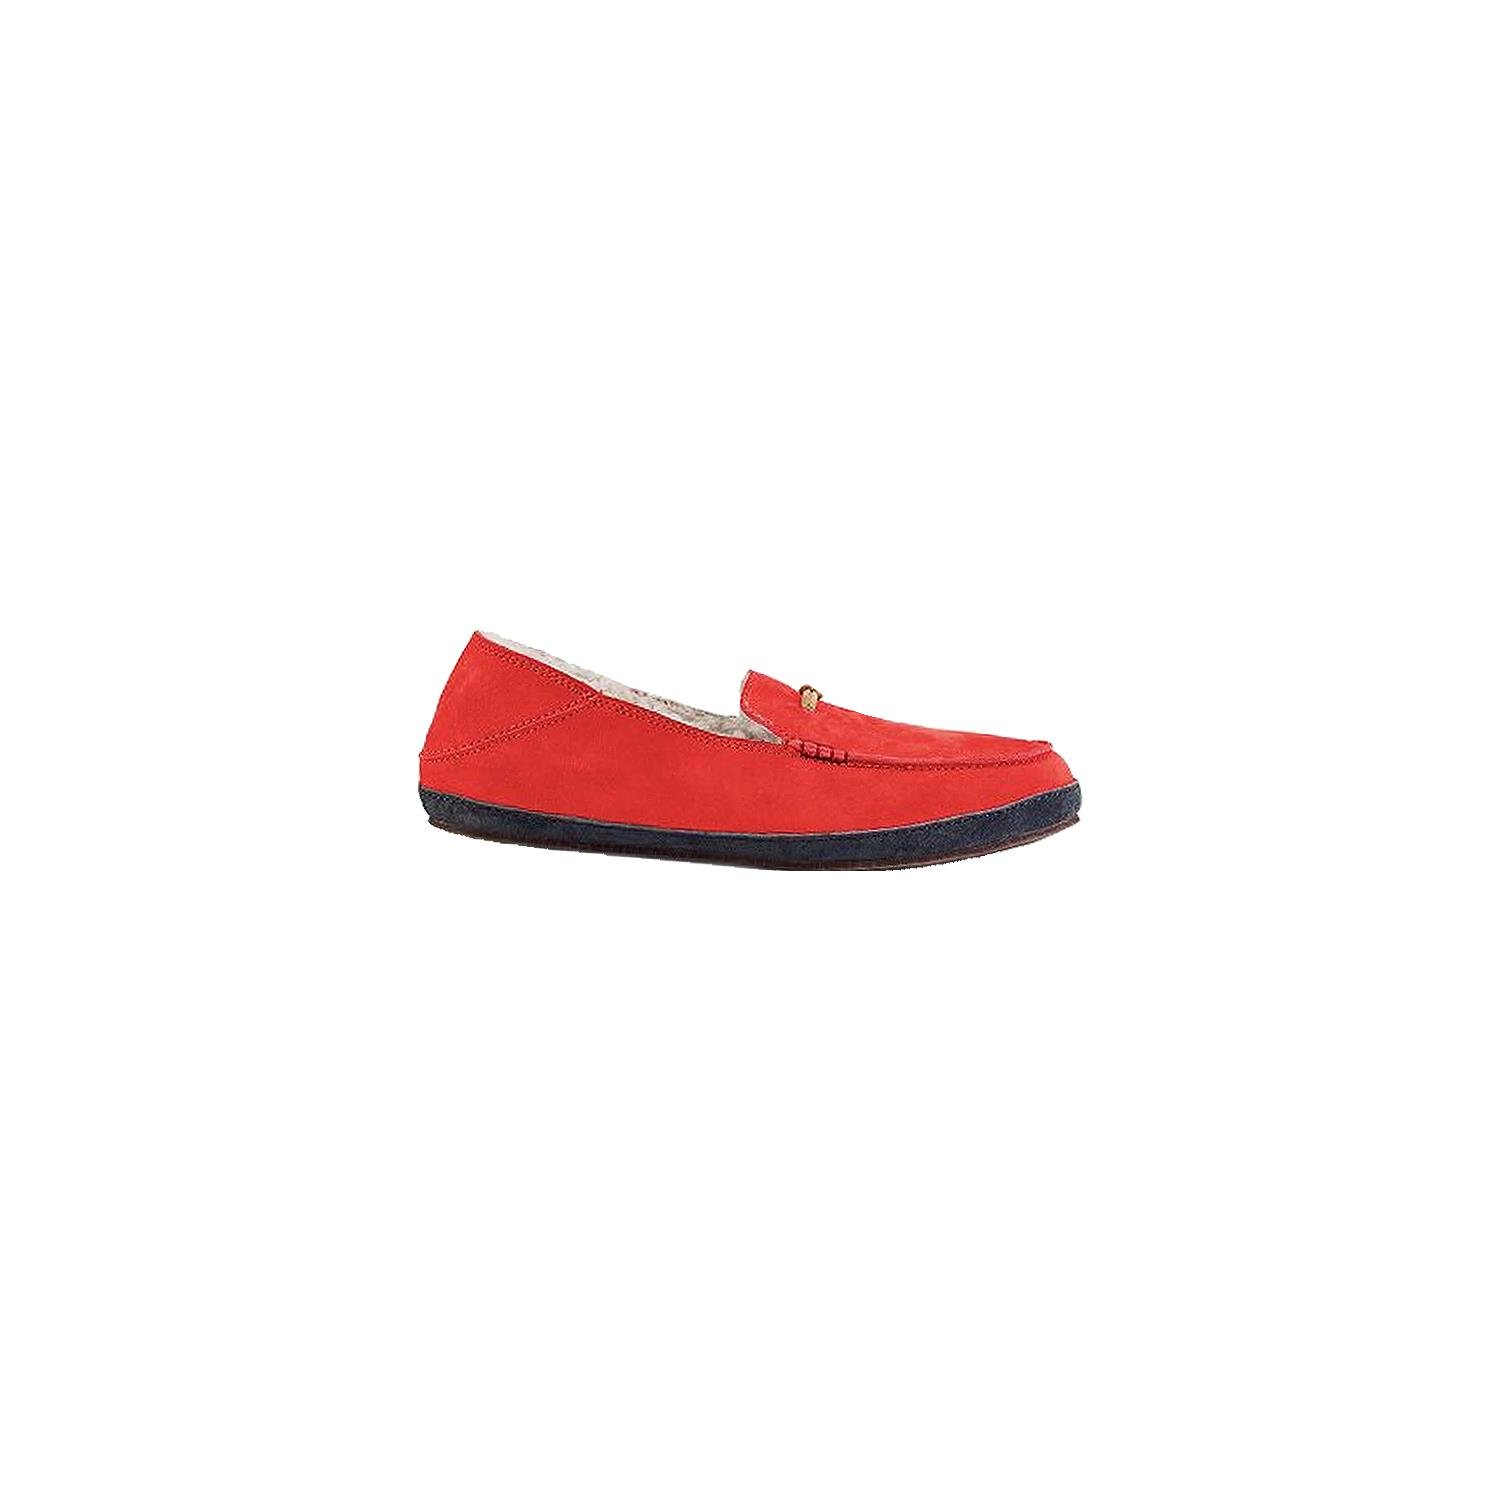 OluKai Women's Pa'Ani Slipper Grenadine/Dark Shadow Nubuck 8 Medium